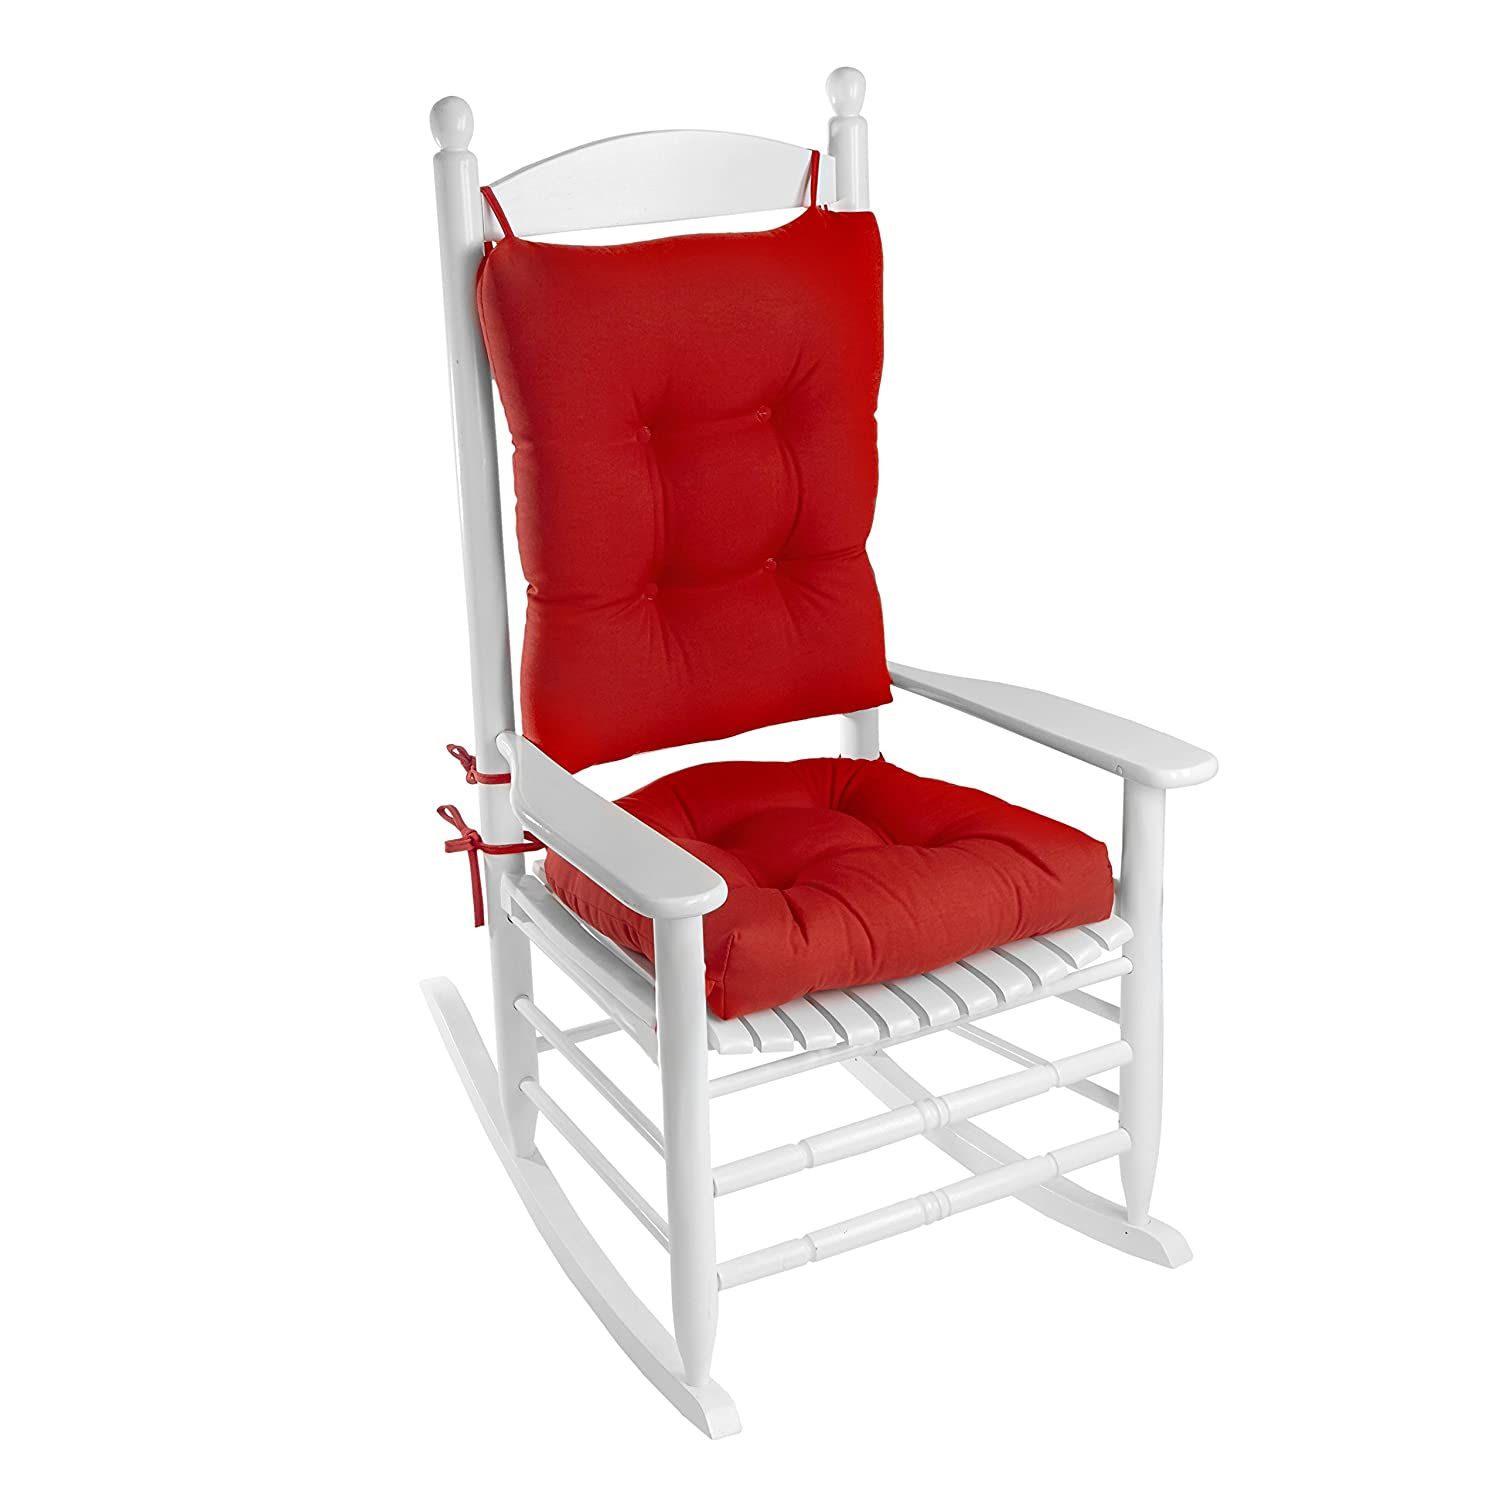 Astonishing Klear Vu Indoor Outdoor Rocking Chair Pad Set 20 5 X 19 X 3 Inches Red Uwap Interior Chair Design Uwaporg